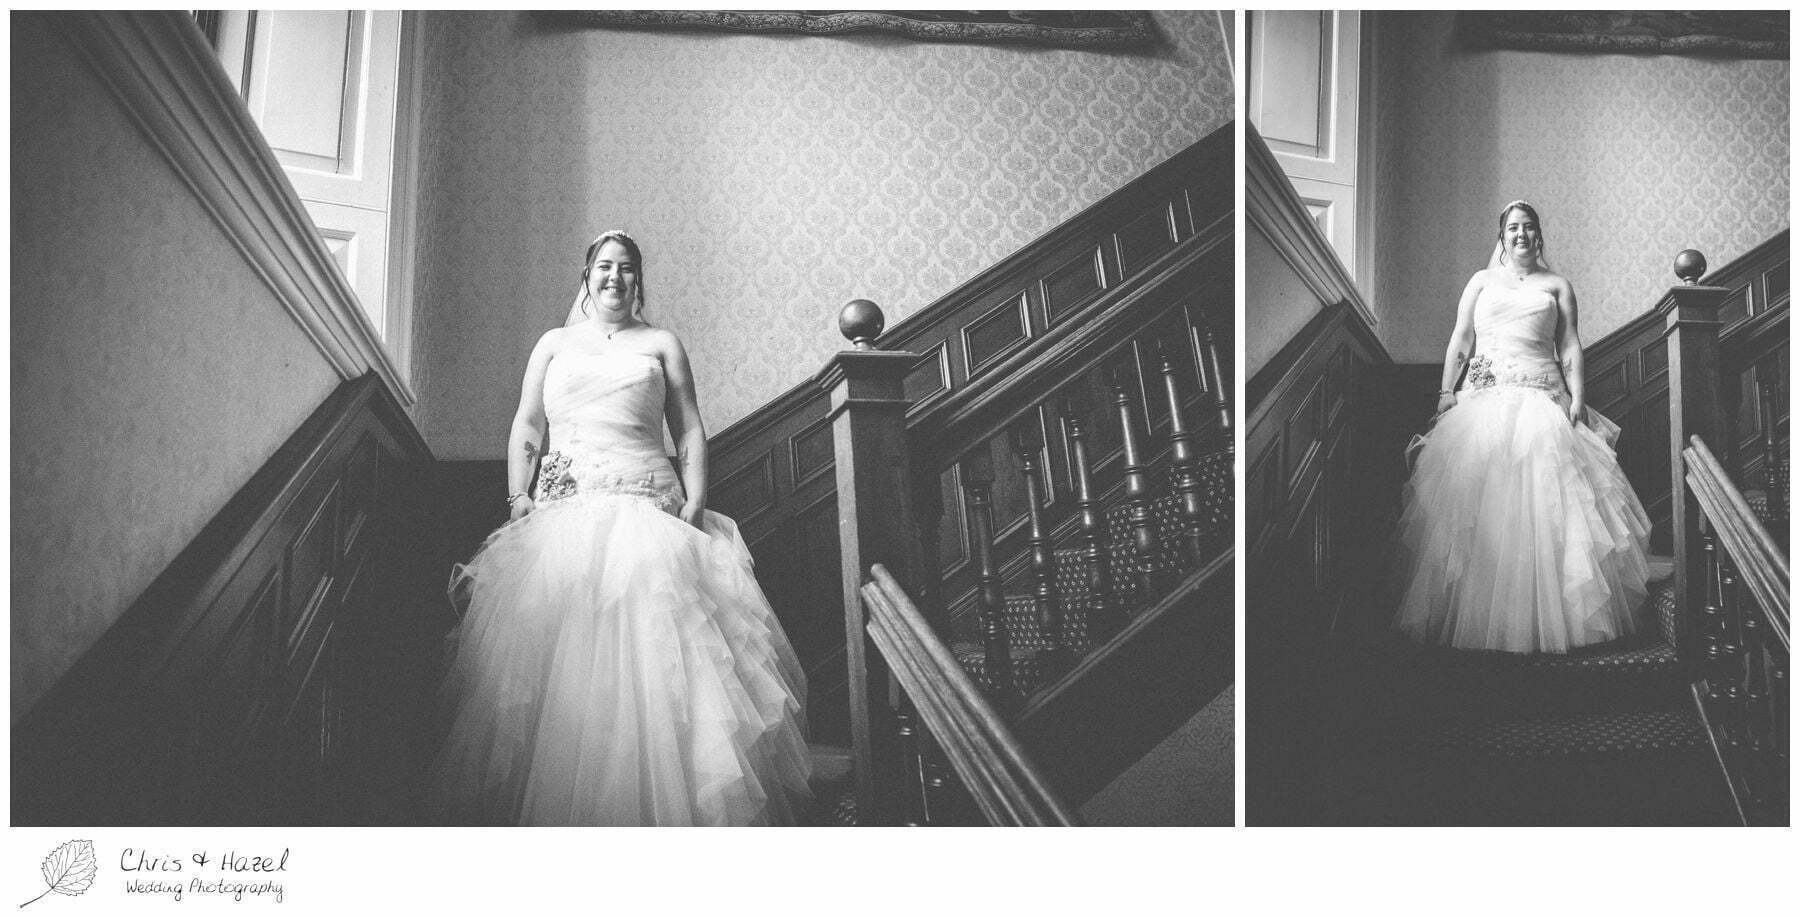 bride walking down stairs, bagden hall wedding venue, documentary wedding photography, denny dale, huddersfield, Wedding Photographer, Bagden Hall, Wedding Photography, Chris and Hazel Wedding Photography, Alex tomenson, Vicky hunt